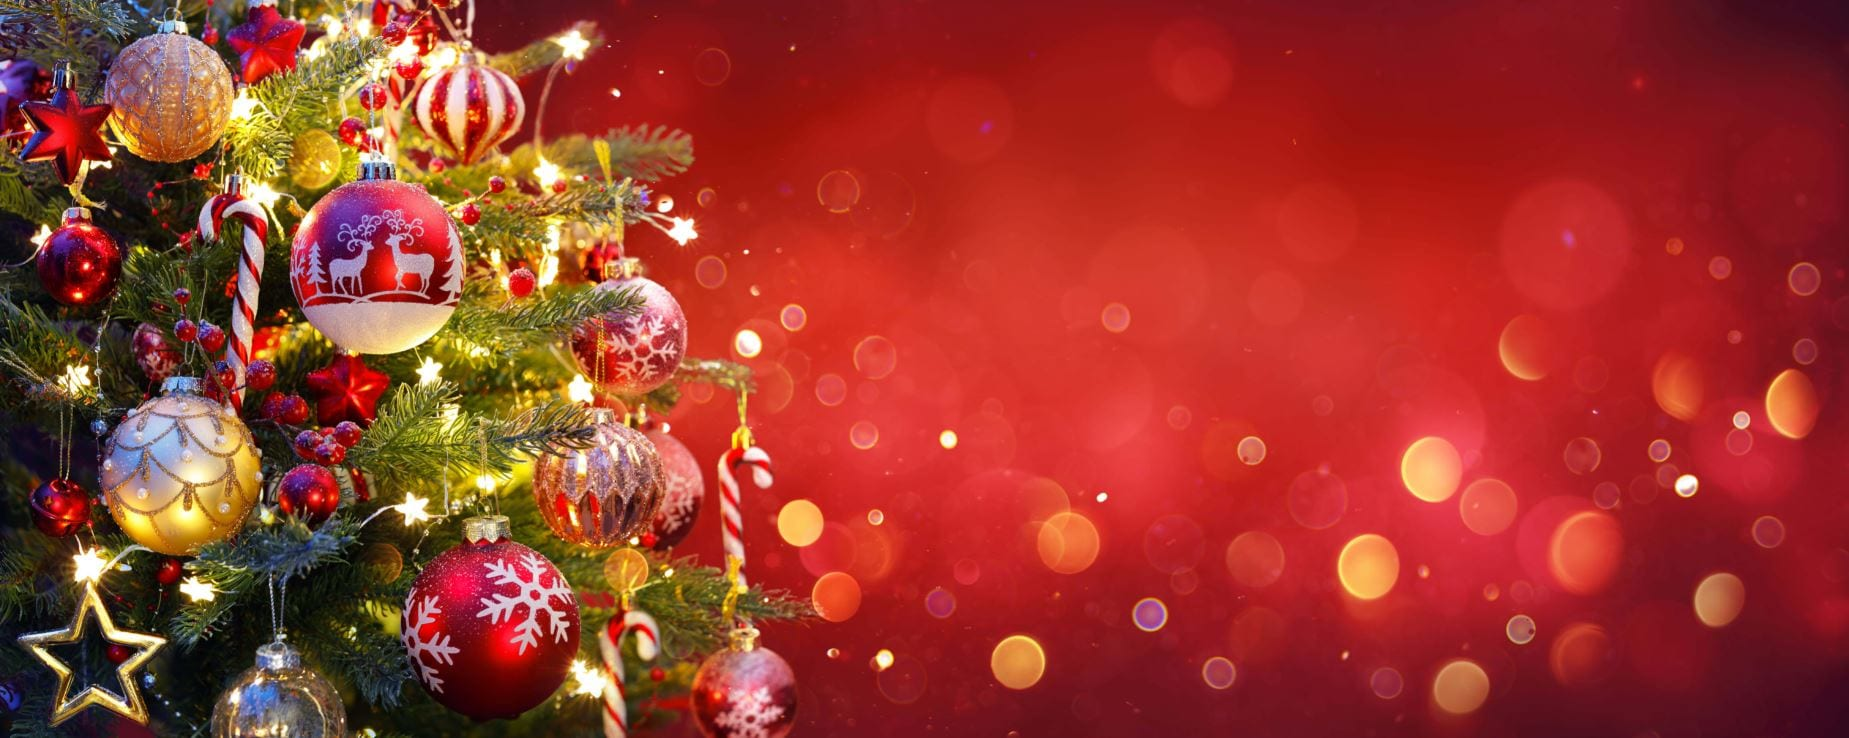 Red Christmas header